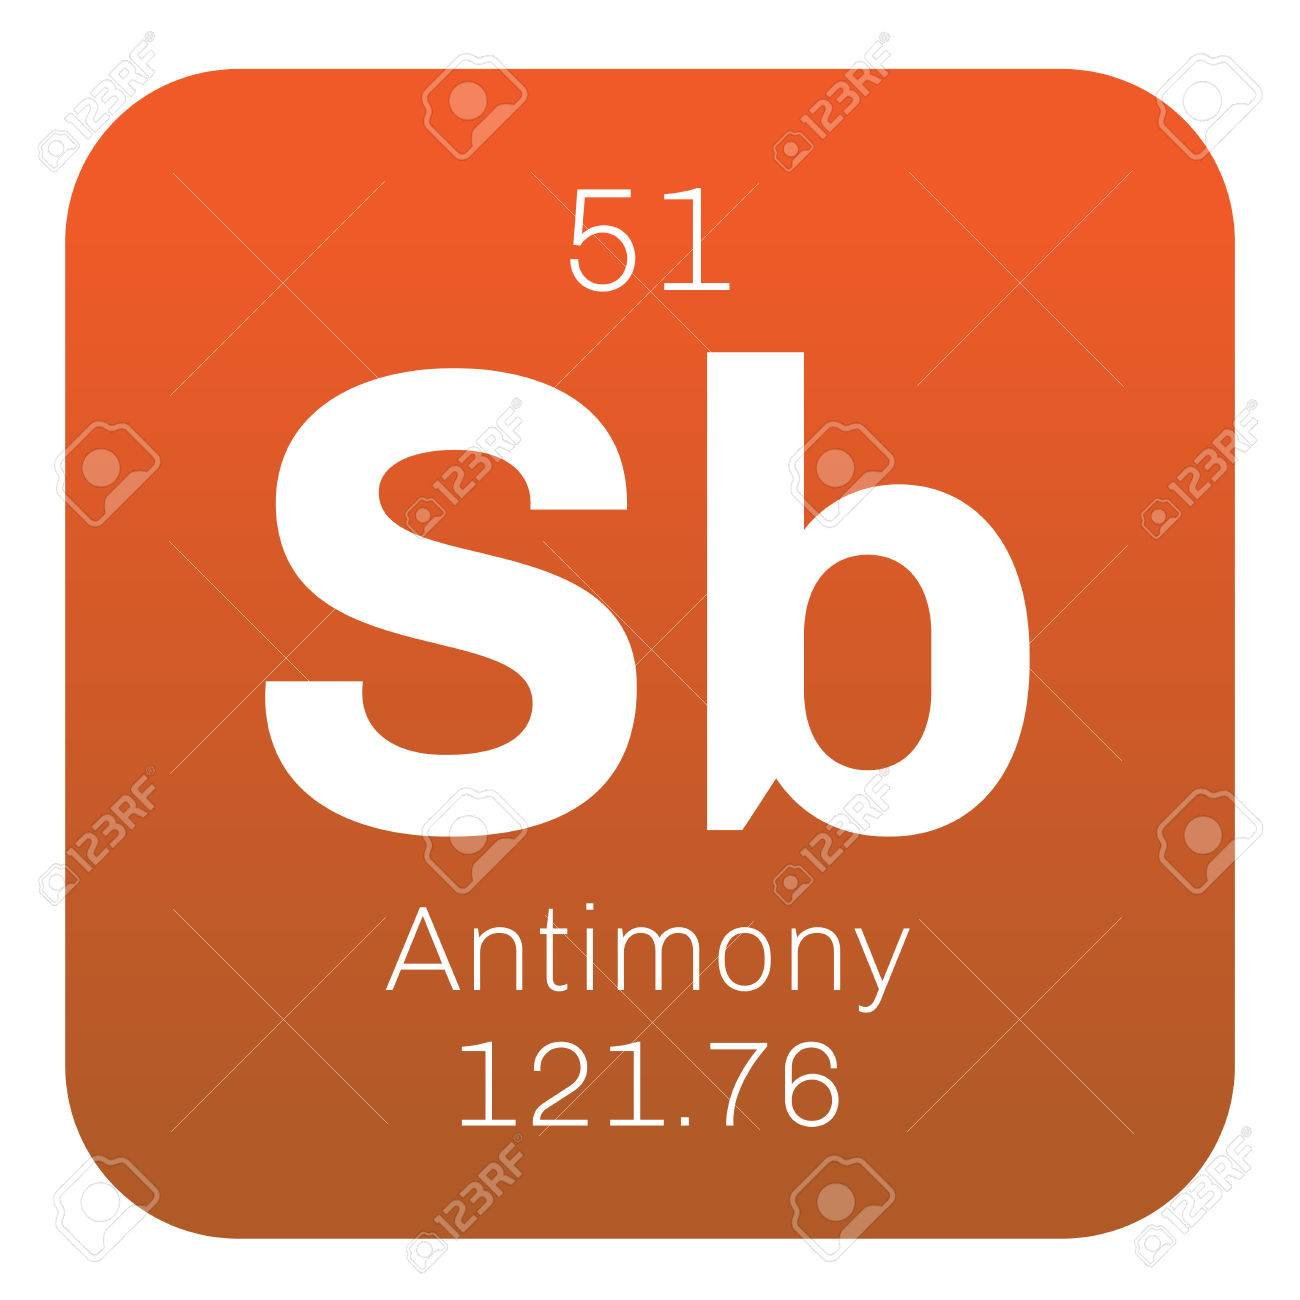 Antimony chemical element gray metalloid colored icon with antimony chemical element gray metalloid colored icon with atomic number and atomic weight biocorpaavc Images